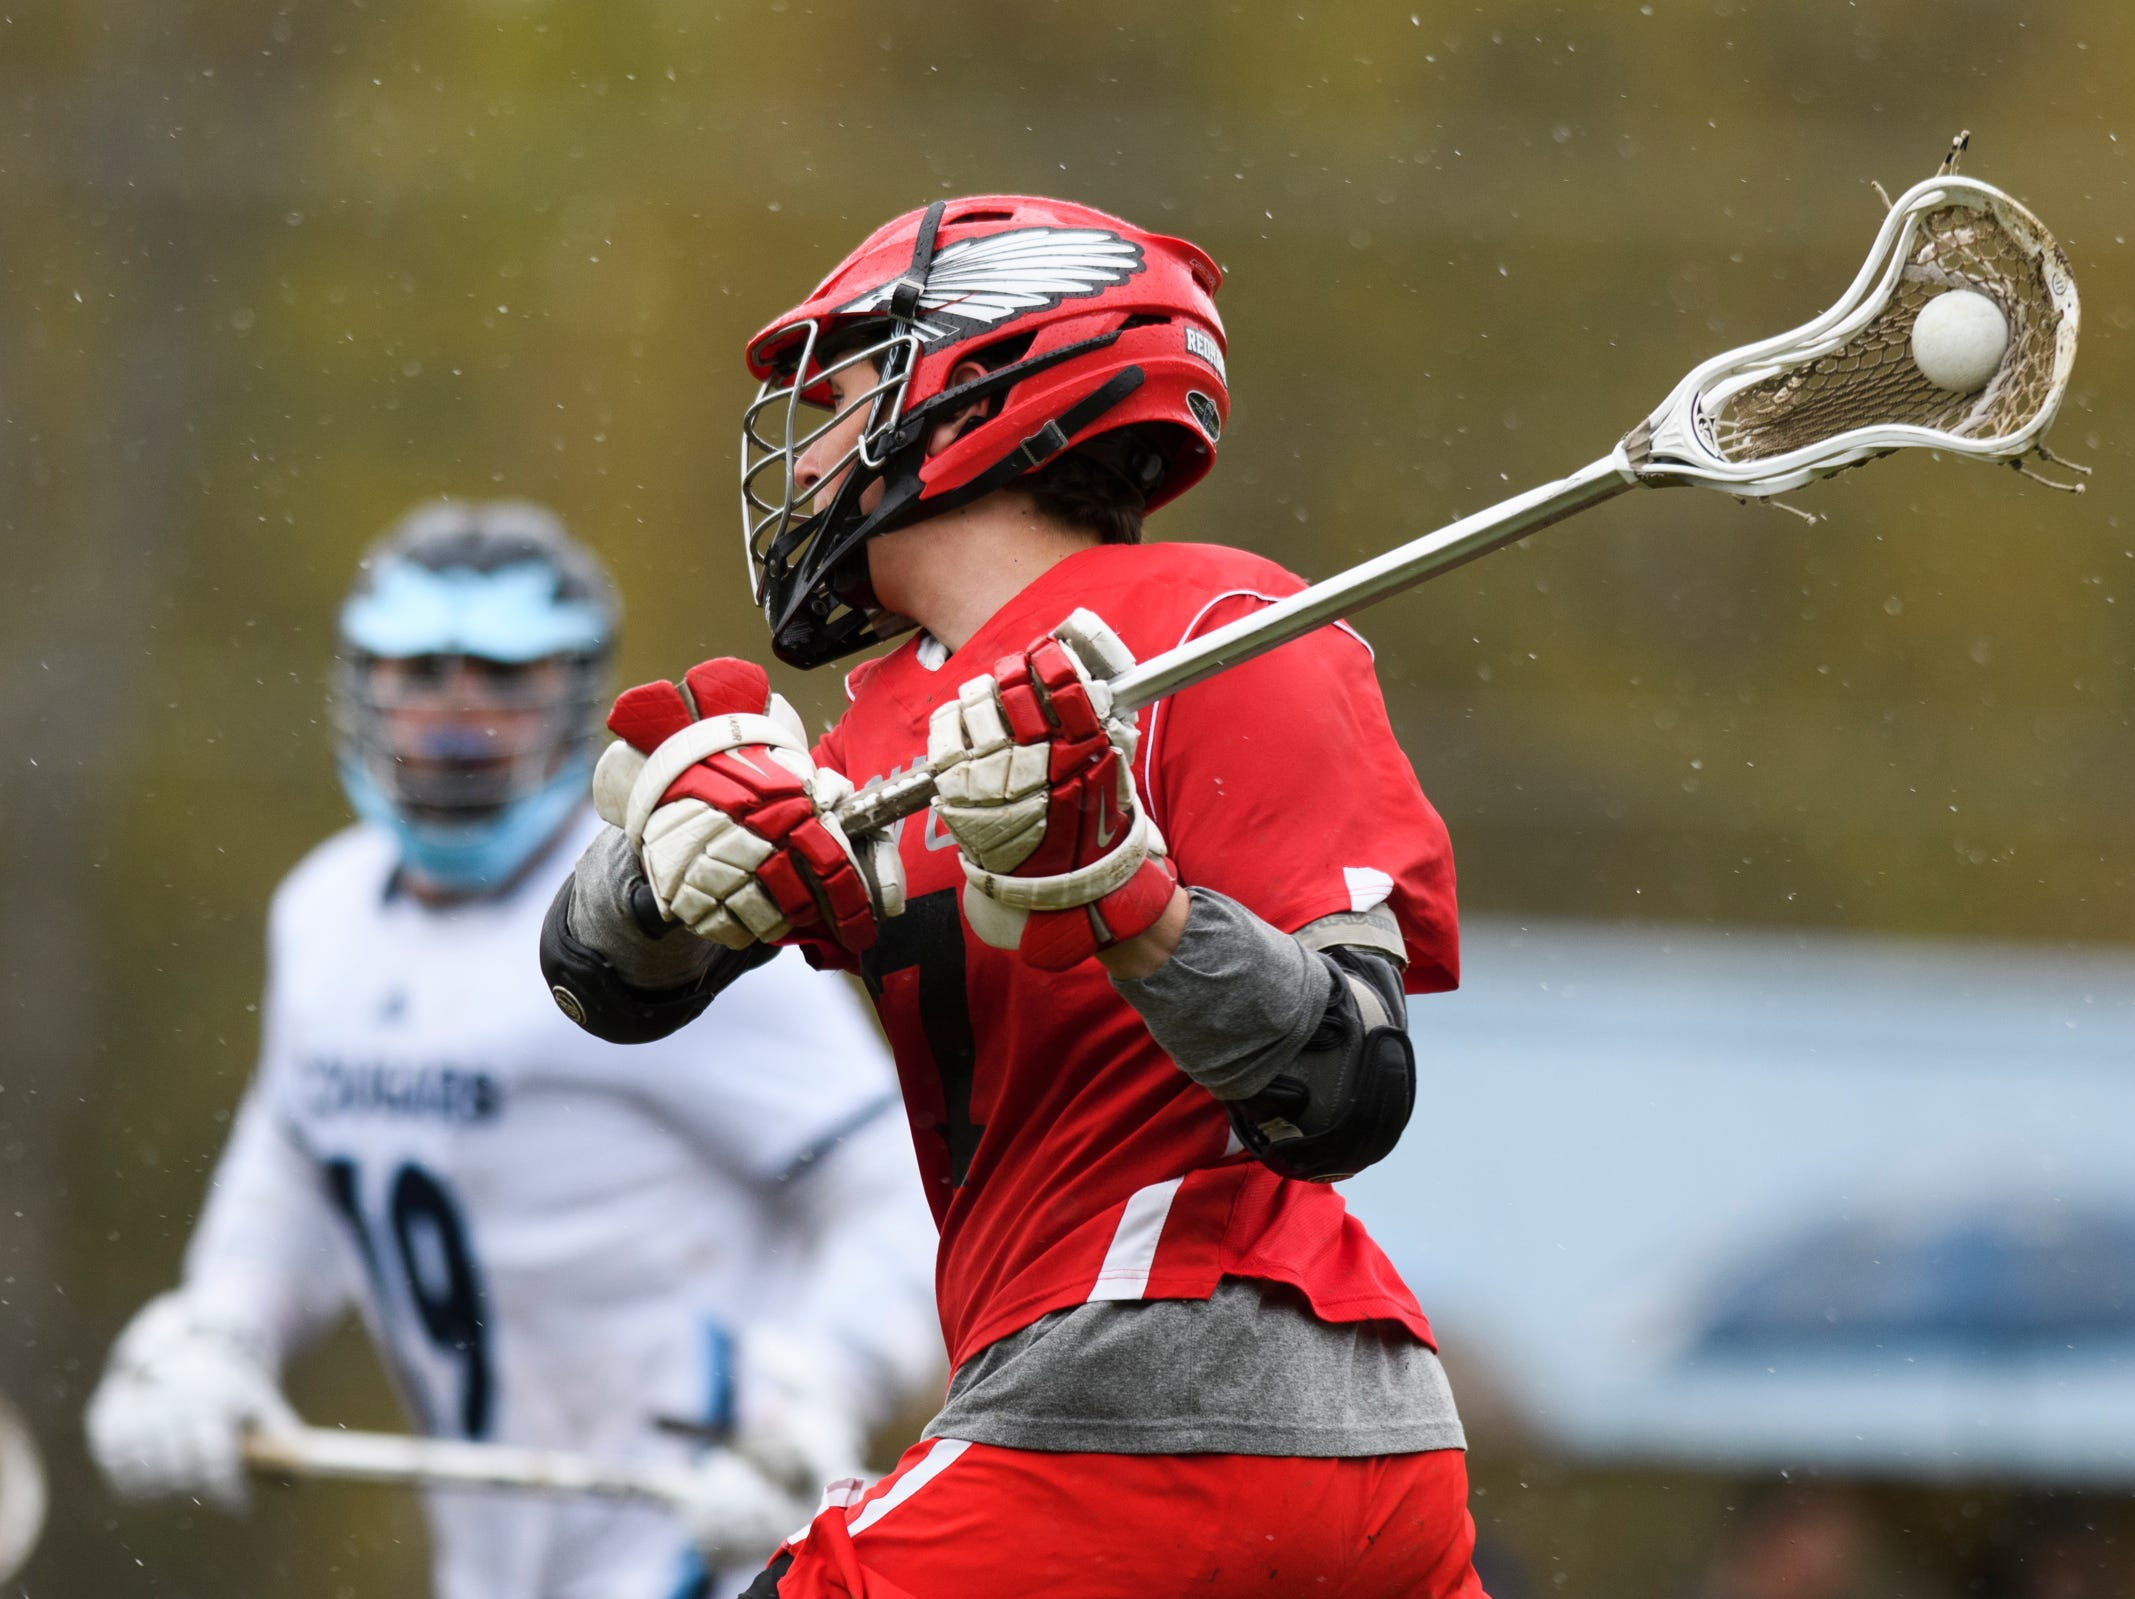 CVU's Charlie Averill (7) shoots the ball during the boys lacrosse game between the Champlain Valley Union Redhawks and the Mount Mansfield Cougars at MMU High School on Tuesday afternoon May 14, 2019 in Jericho, Vermont.